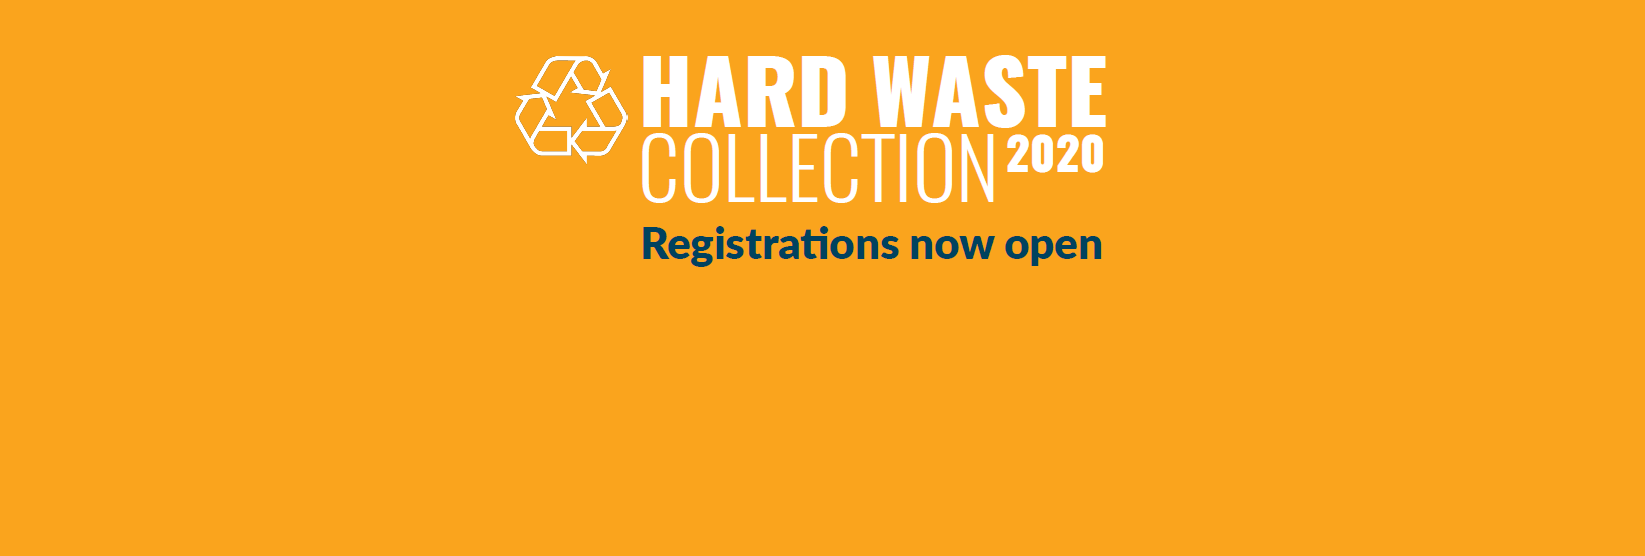 Hard Waste Collection 2020 - City of Launceston - Registrations Now Open.png